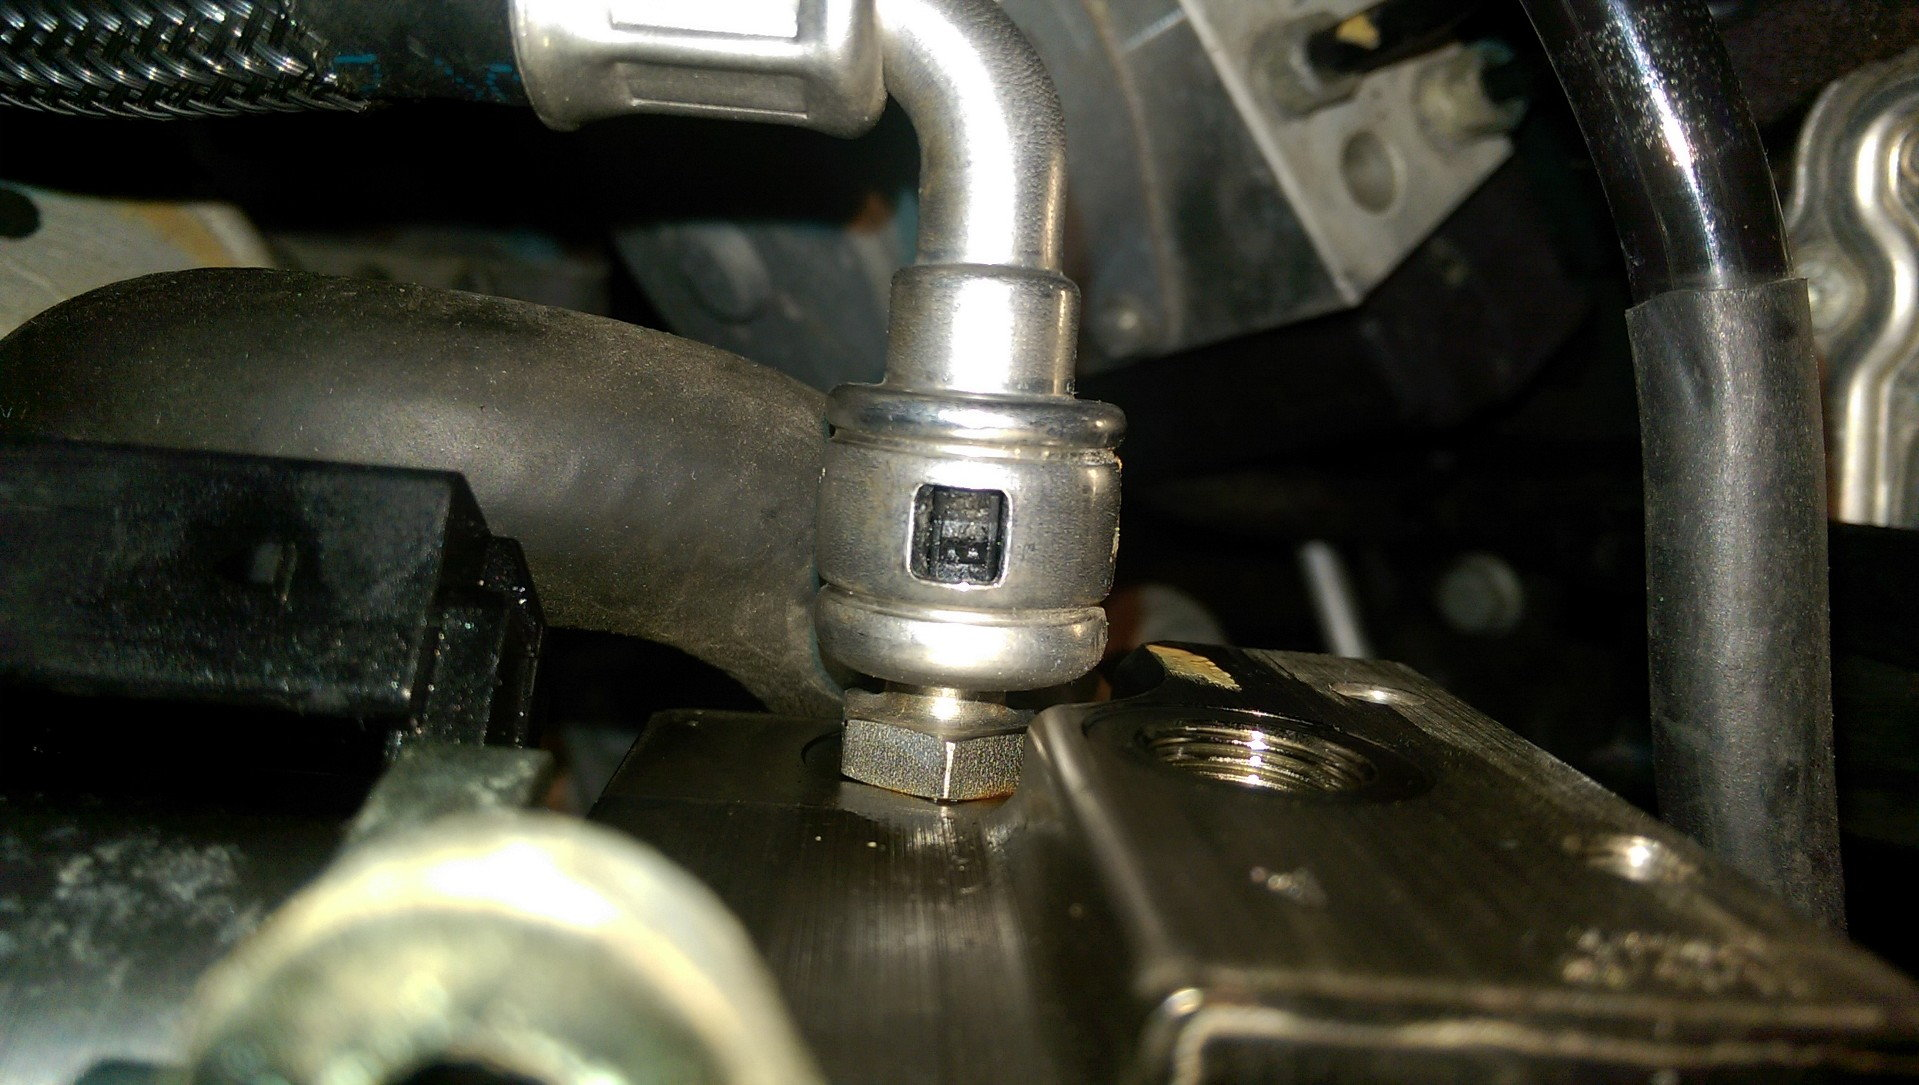 How To DIY HPFP Replacement - How to replace High Pressure Fuel Pump